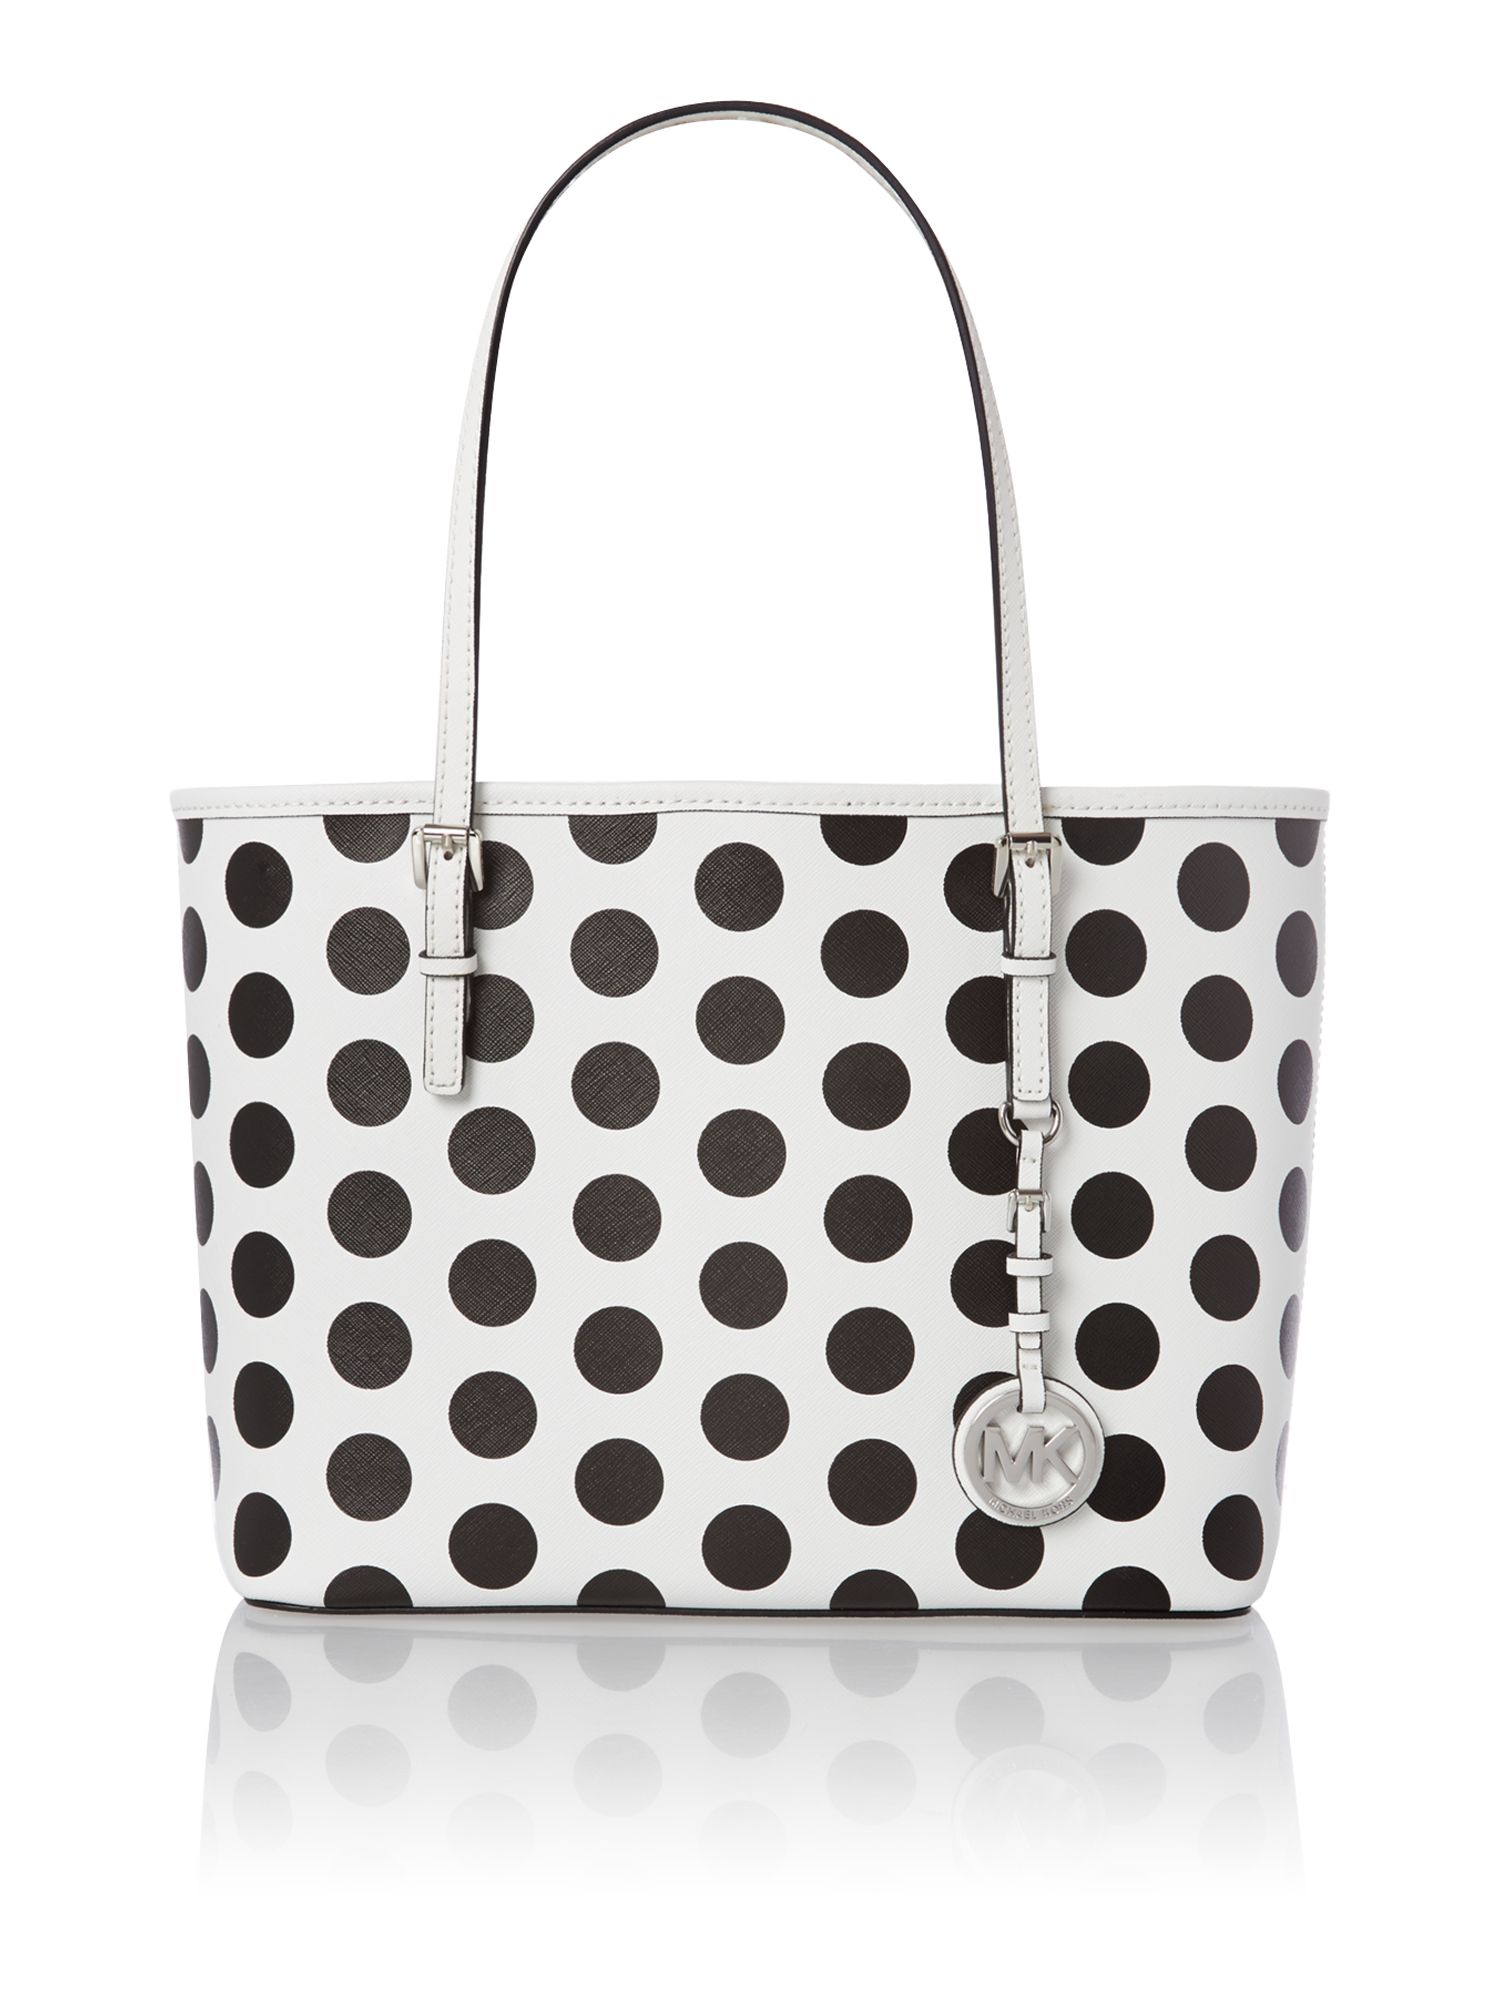 Jet set travel mono dot small tote bag